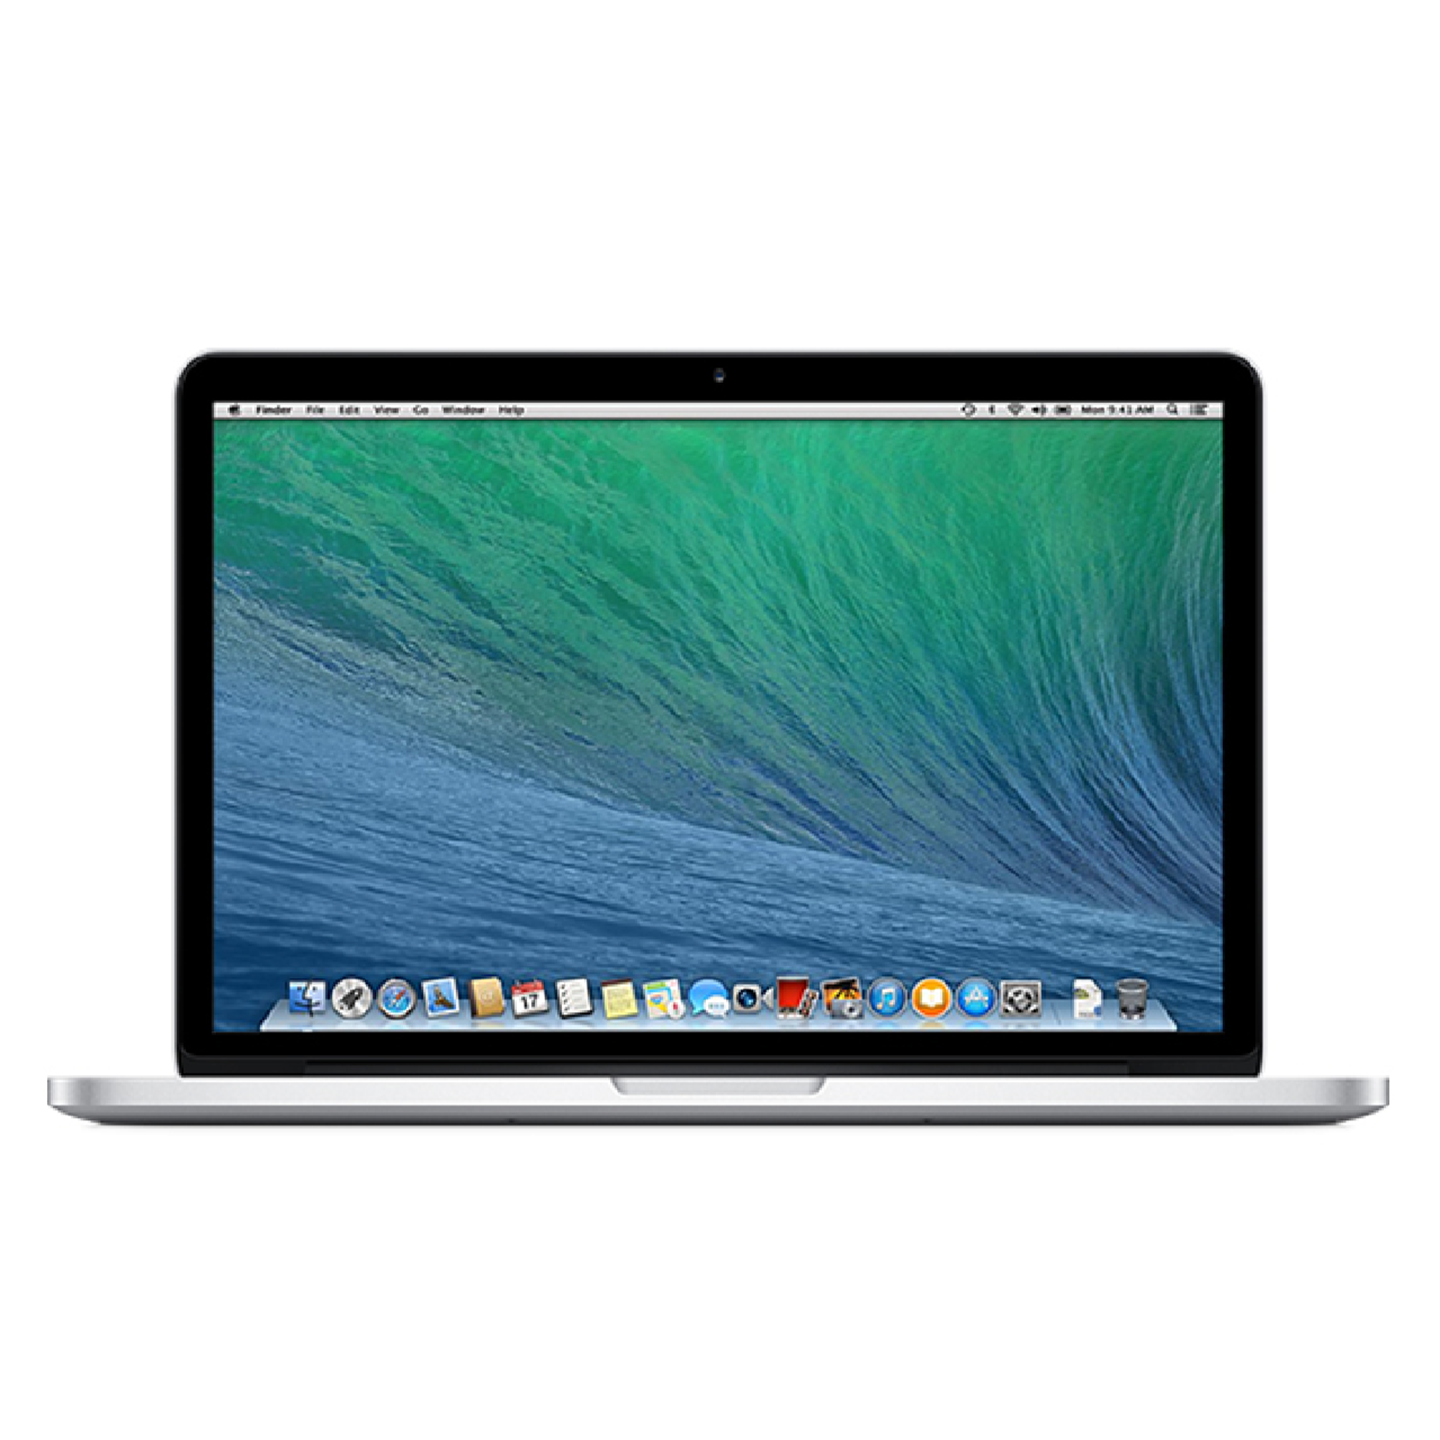 MacBook Pro (Retina, 13-inch, Late 2013)Core i5/8GB/SSD256GB E771